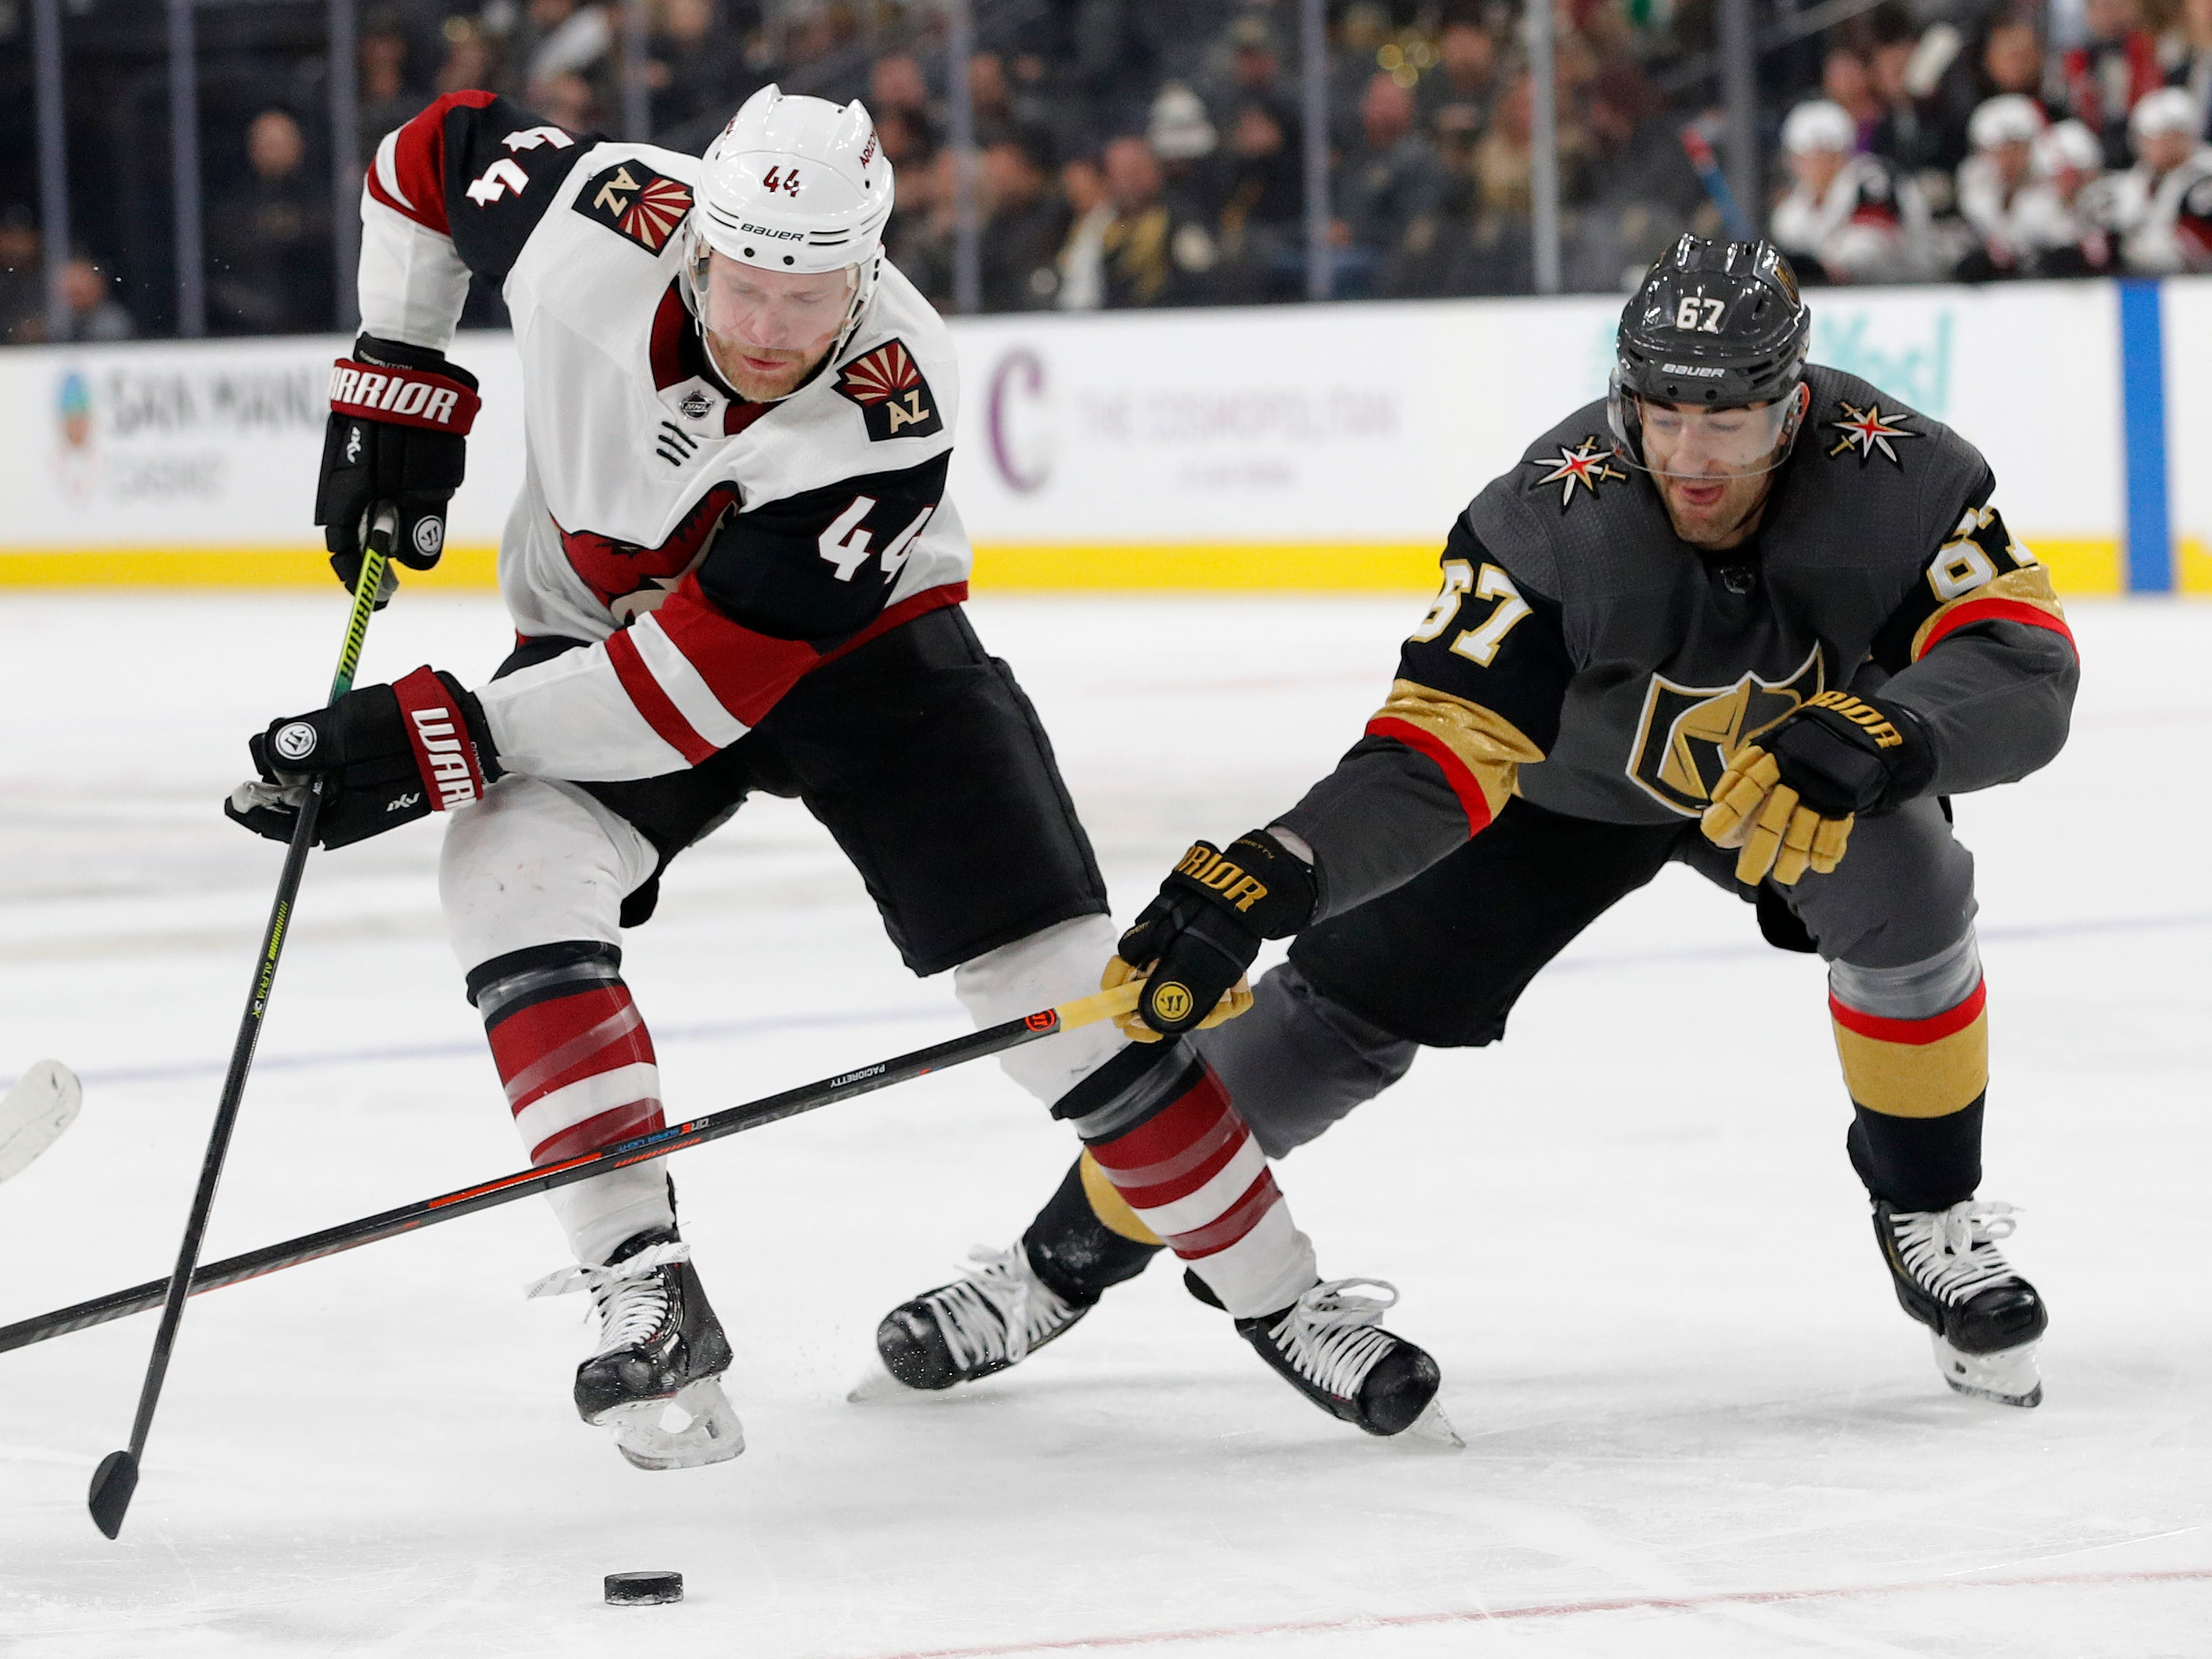 Arizona Coyotes defenseman Kevin Connauton (44) vies for the puck with Vegas Golden Knights left wing Max Pacioretty (67) during the first period of an NHL hockey game Tuesday, Feb. 12, 2019, in Las Vegas. (AP Photo/John Locher)